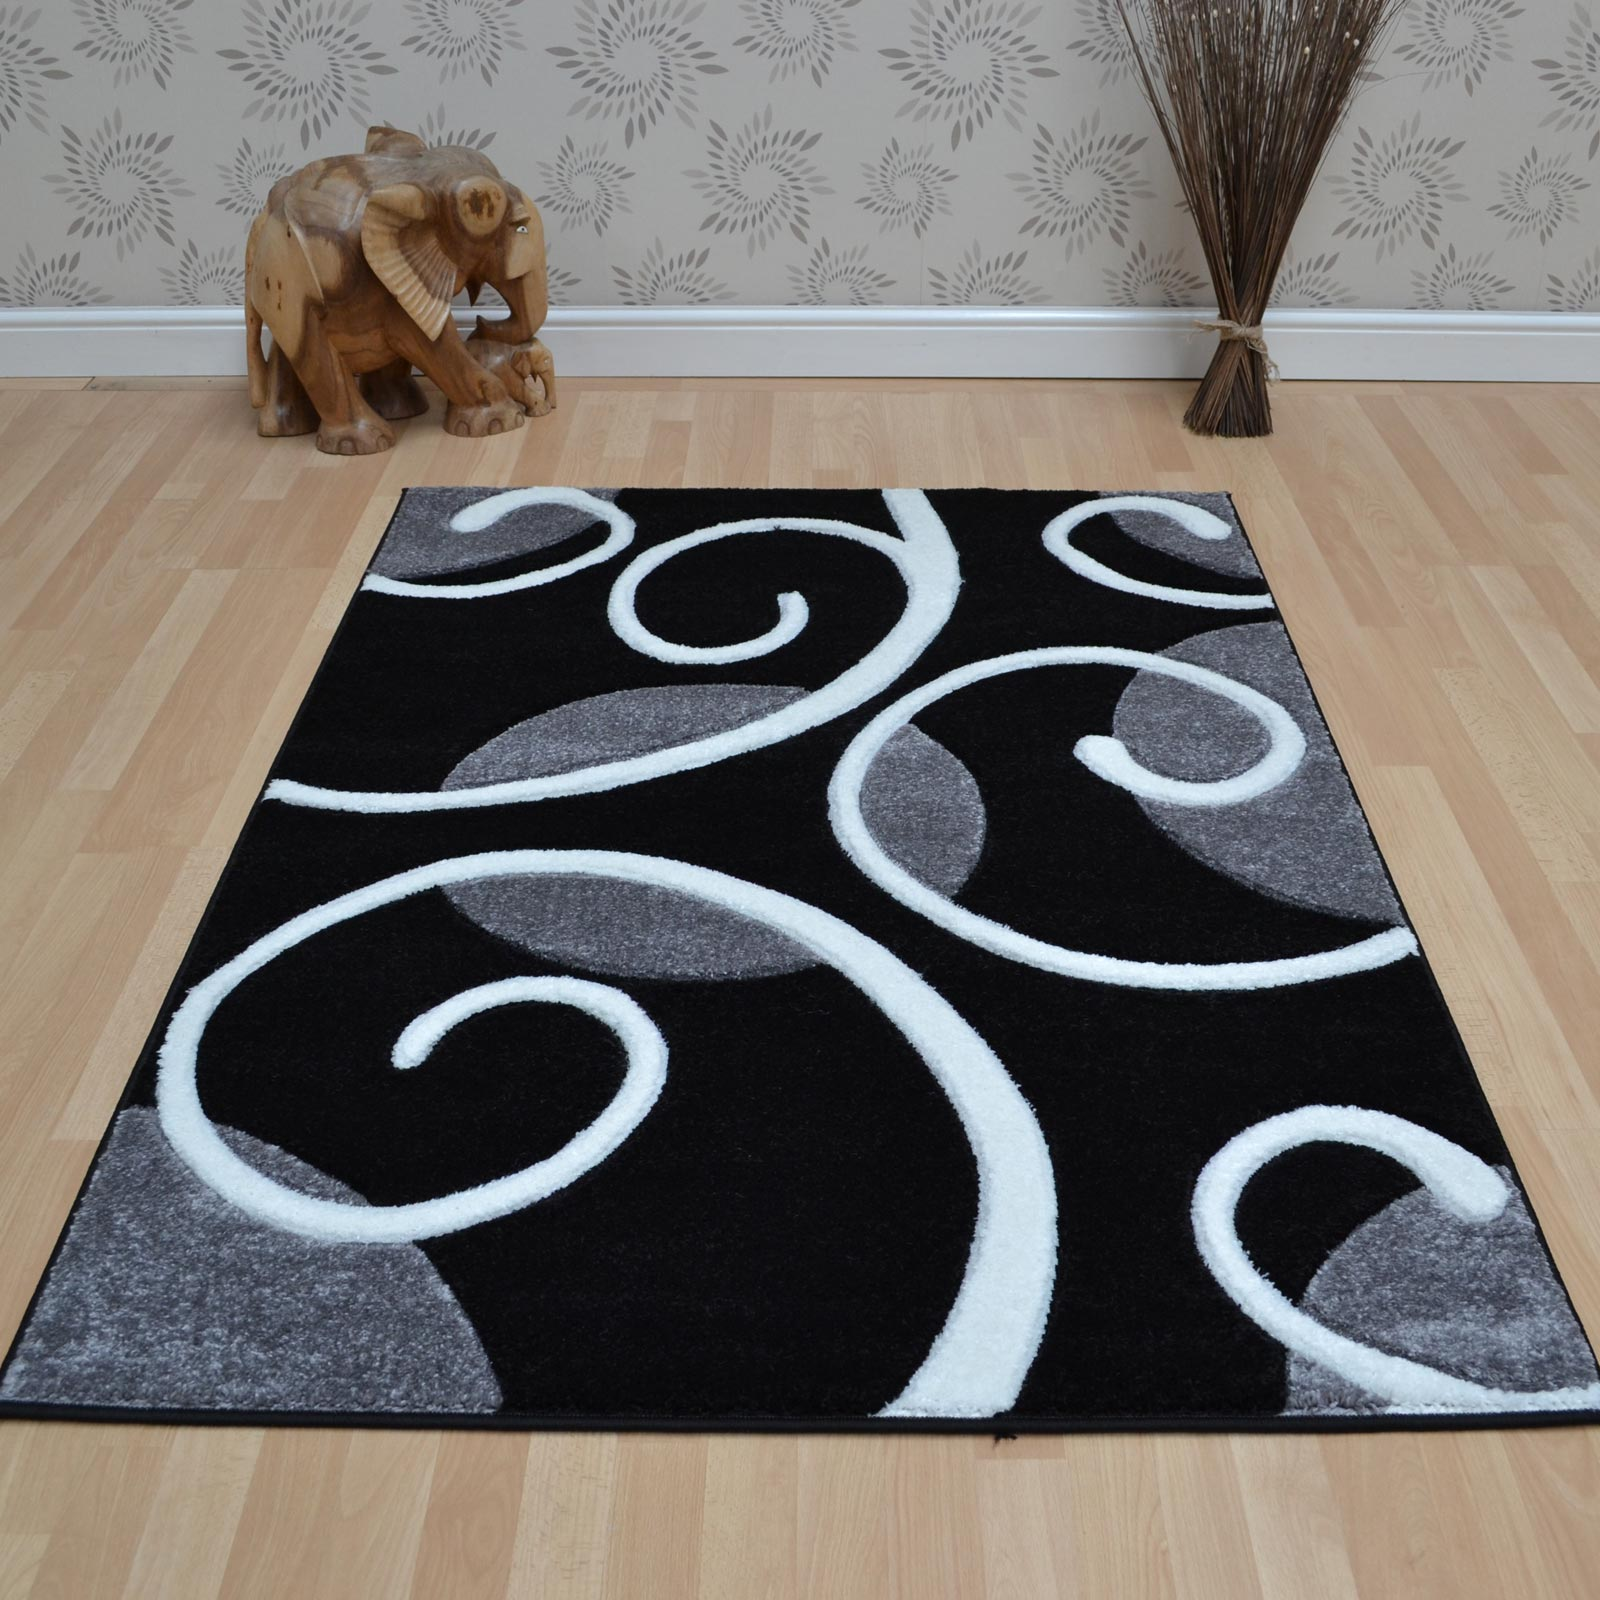 Couture Rugs COU06 Grey Black